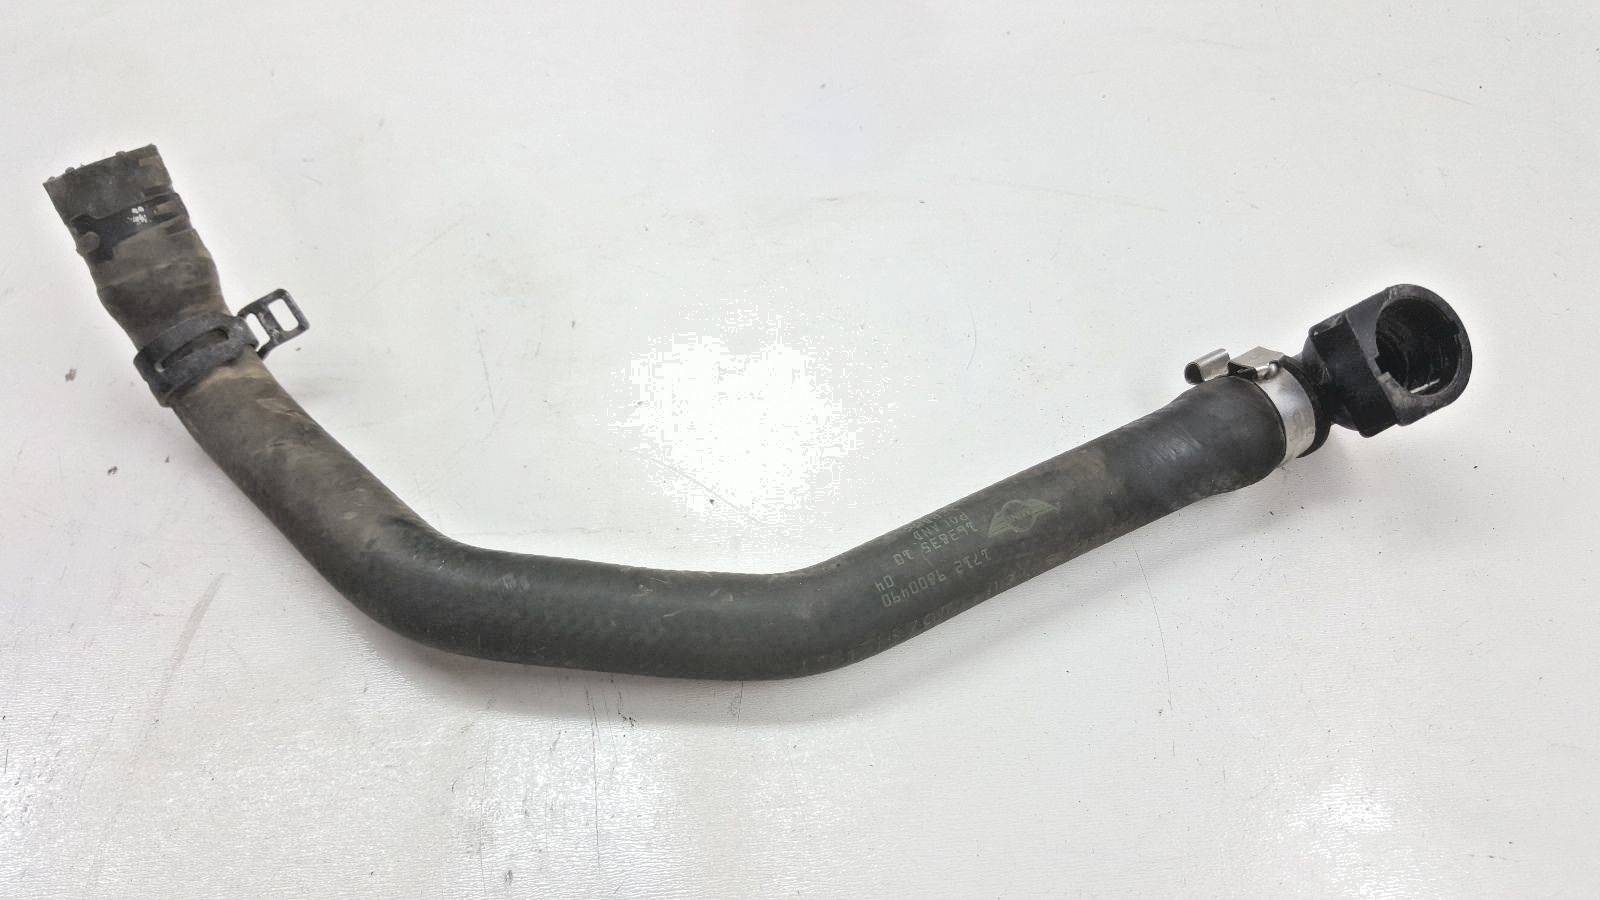 2011 Mini Cooper Countryman 1.6L R60 Radiator Coolant Hose Part# 17129800490 OEM 17129800490